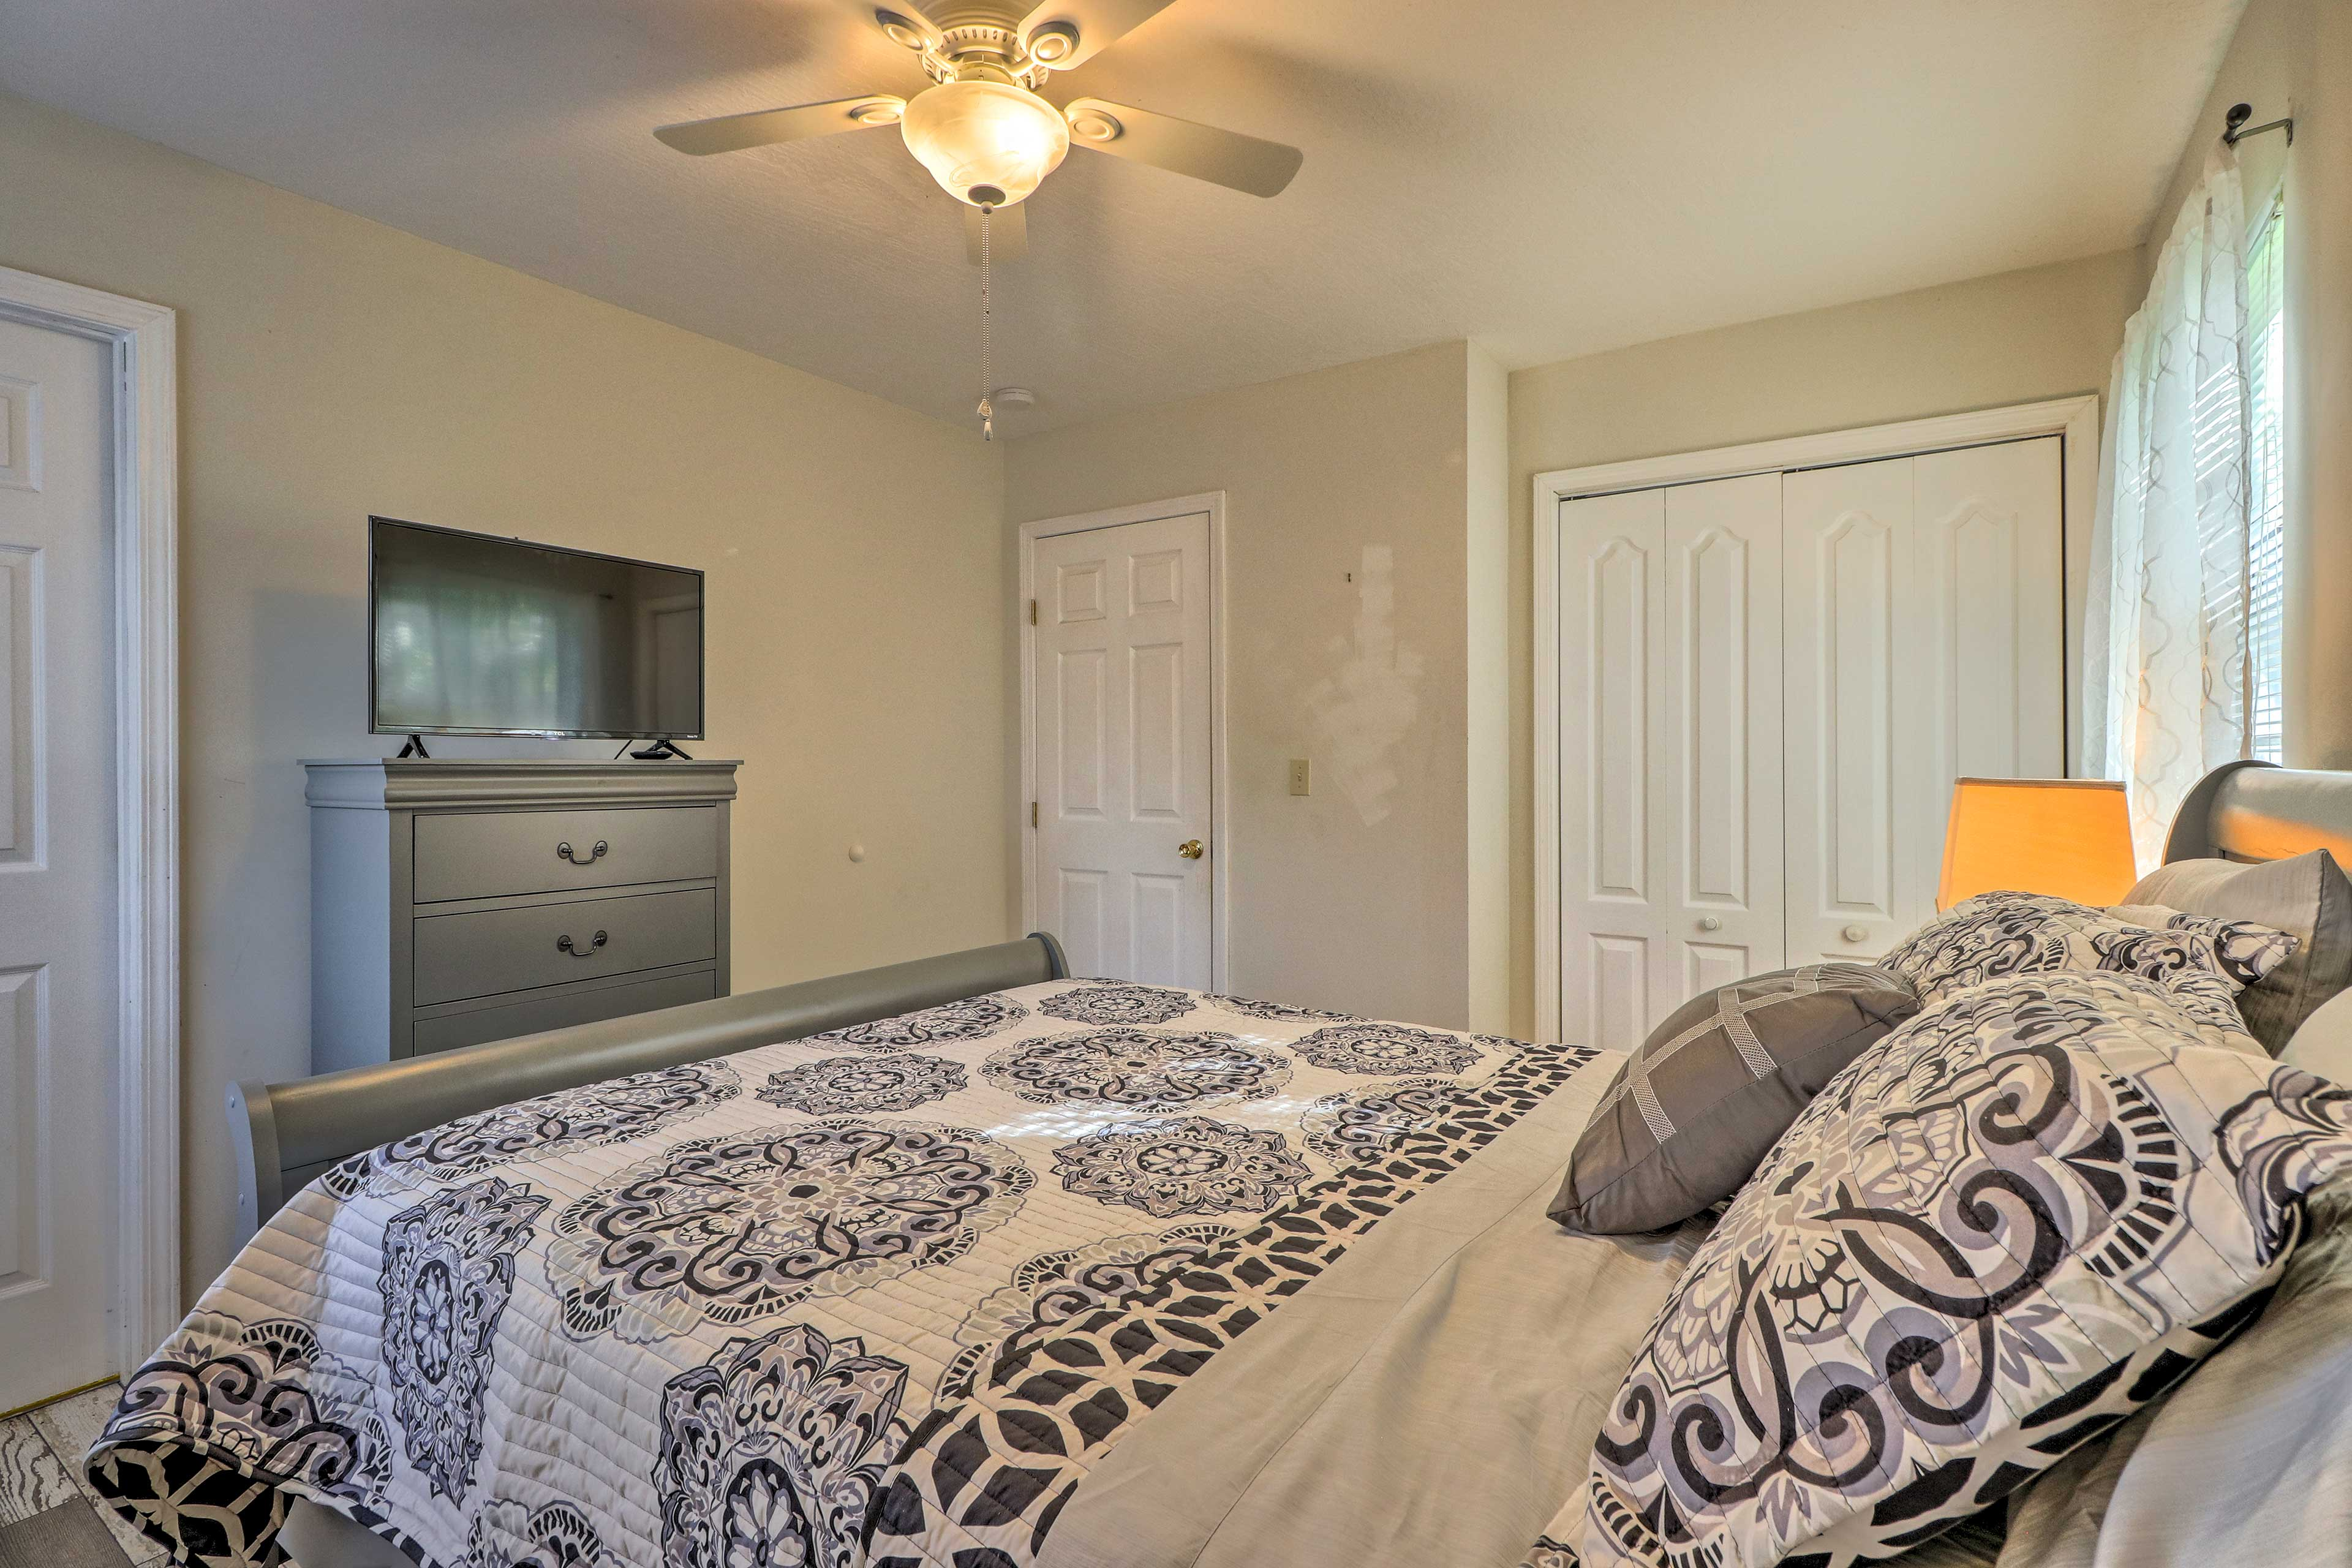 Snuggle up in this queen bed with a movie playing on the flat-screen Smart TV.